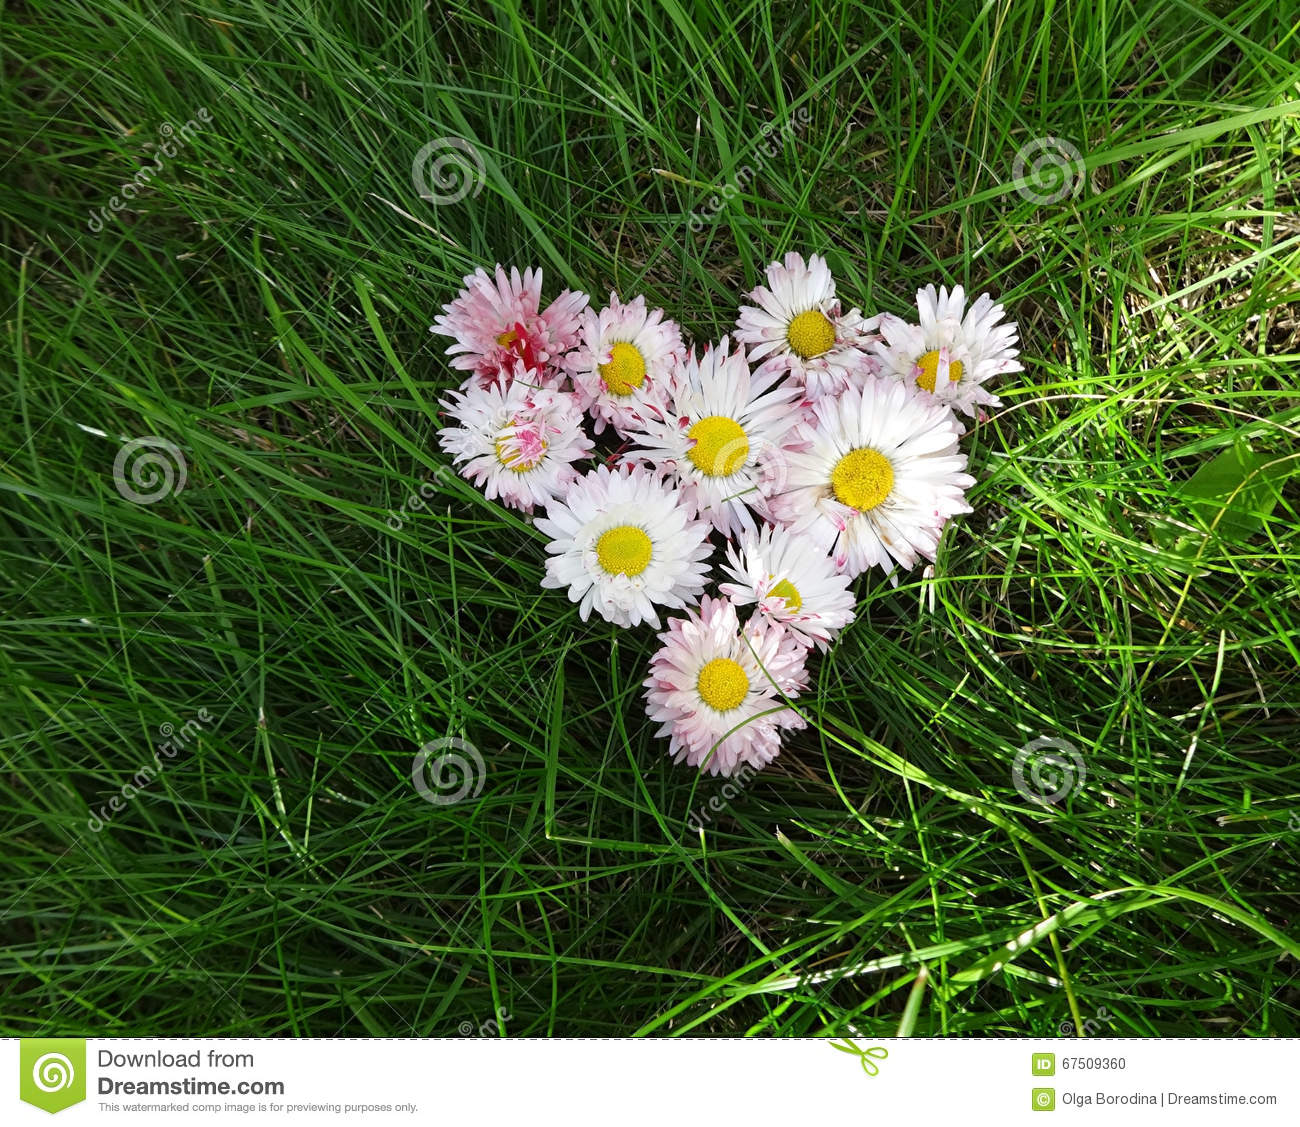 Flowers daisies in a heart shape stock photo image of love flowers daisies in a heart shape stock photo image of love contrast 67509360 izmirmasajfo